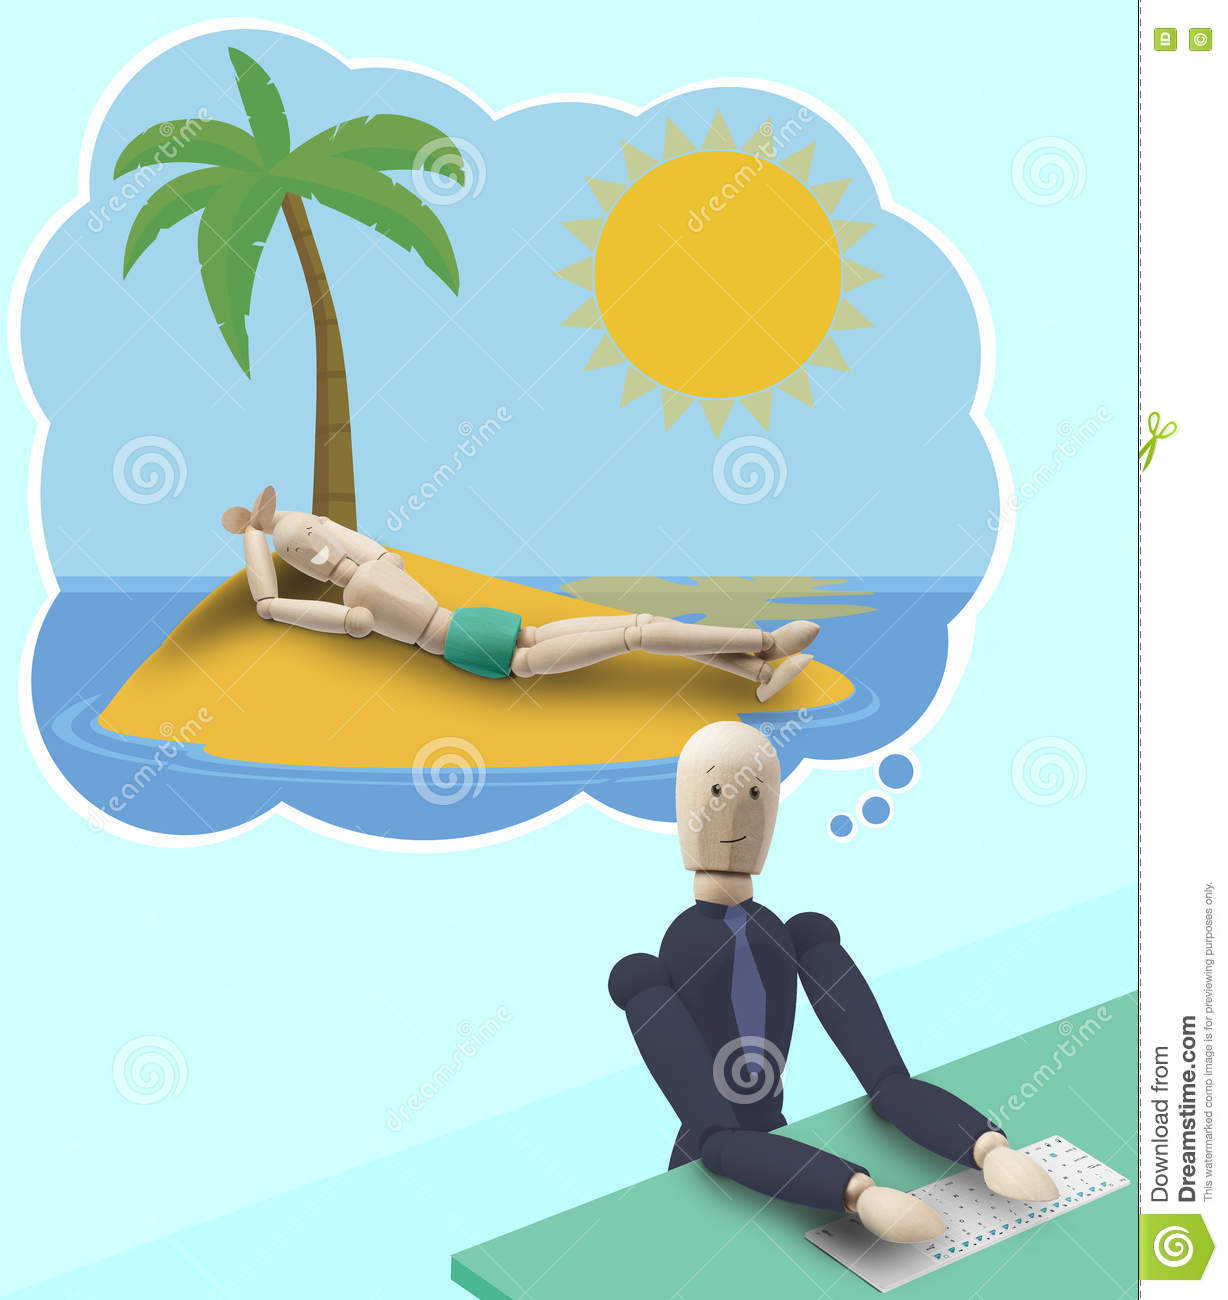 A Man At Work Dressed In Suit And Tie While Working On His Pc Dreams Summer Holydays Desert Island Sunbathing Bathing